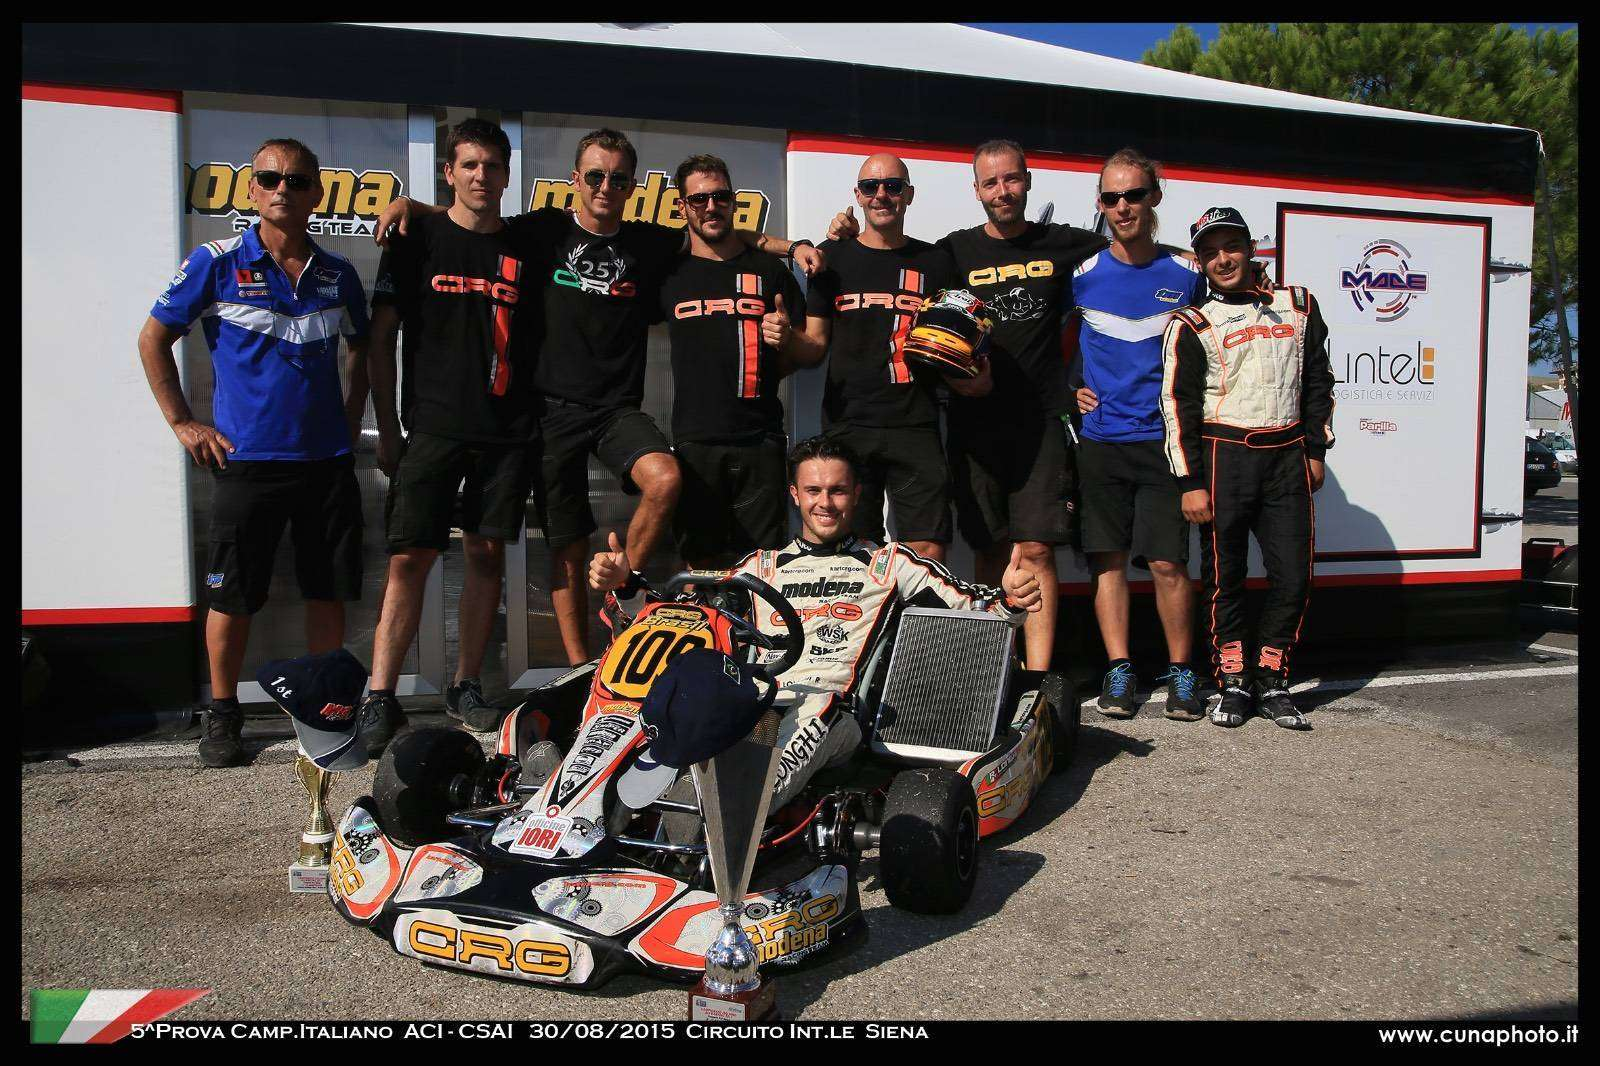 imaf-reasing-seats-karting-29